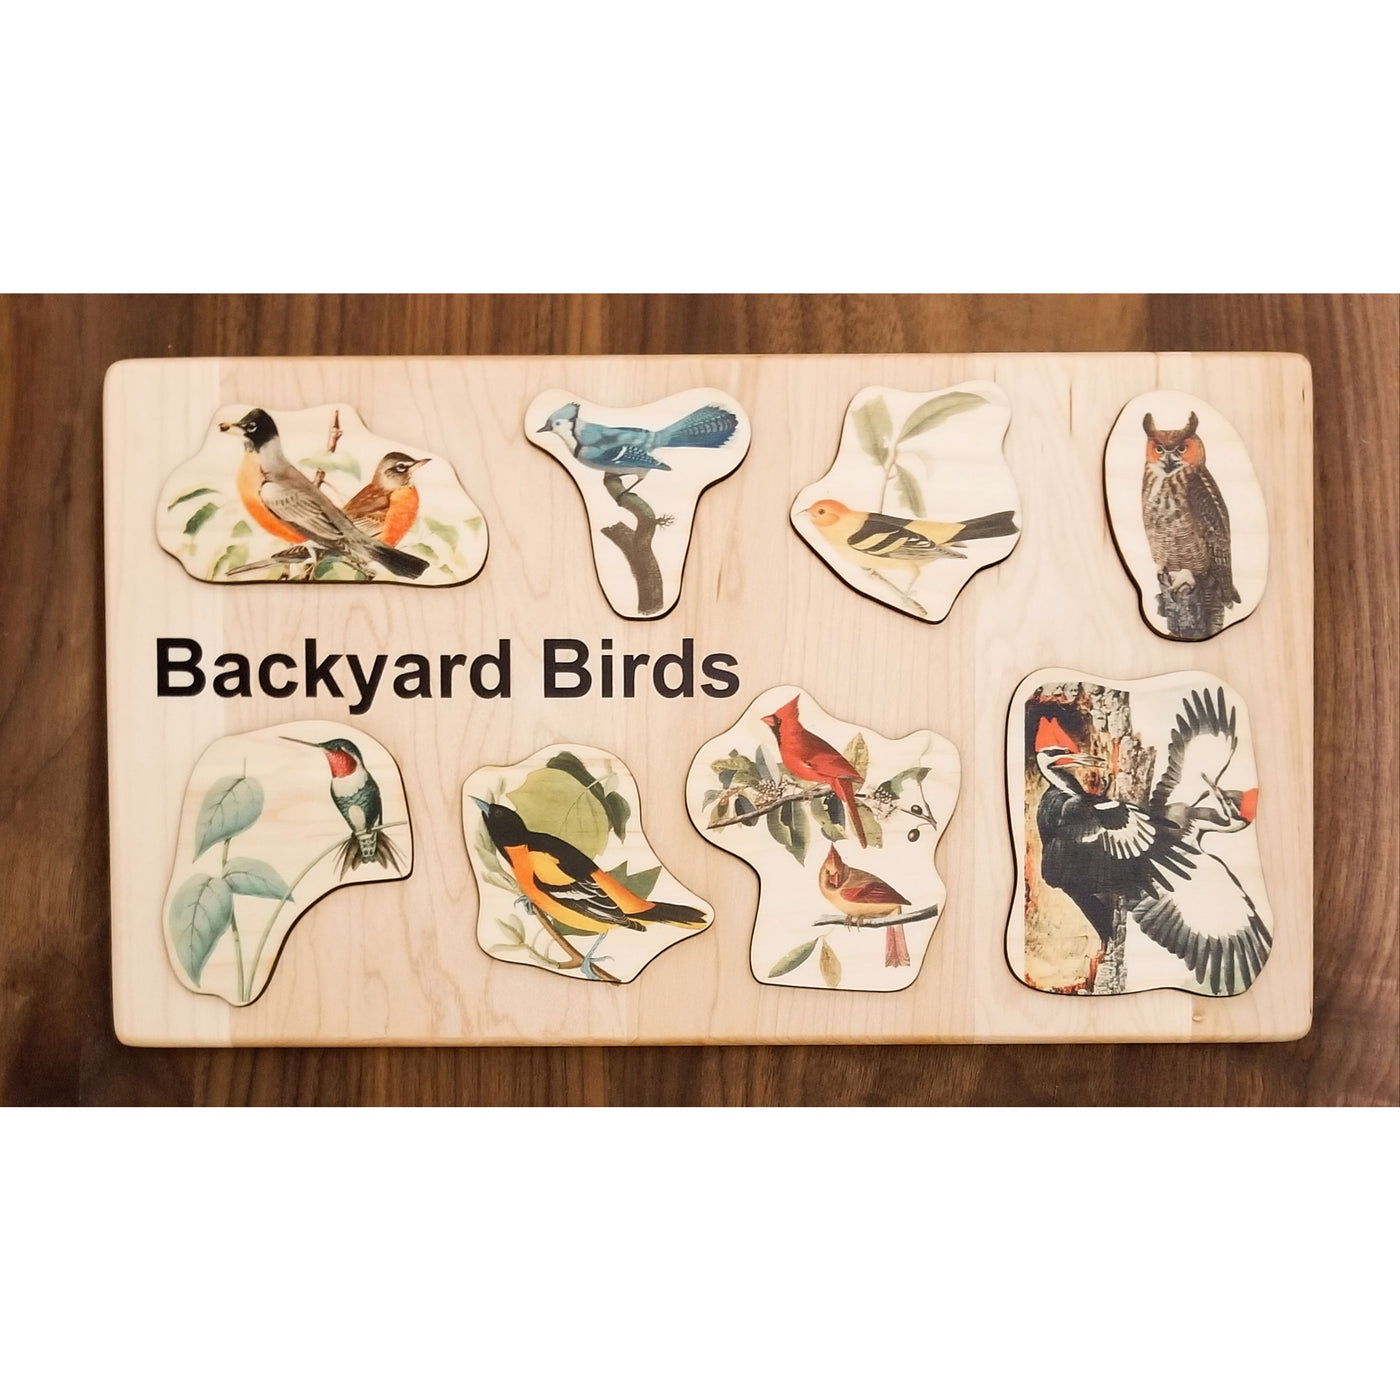 Backyard birds wooden puzzle